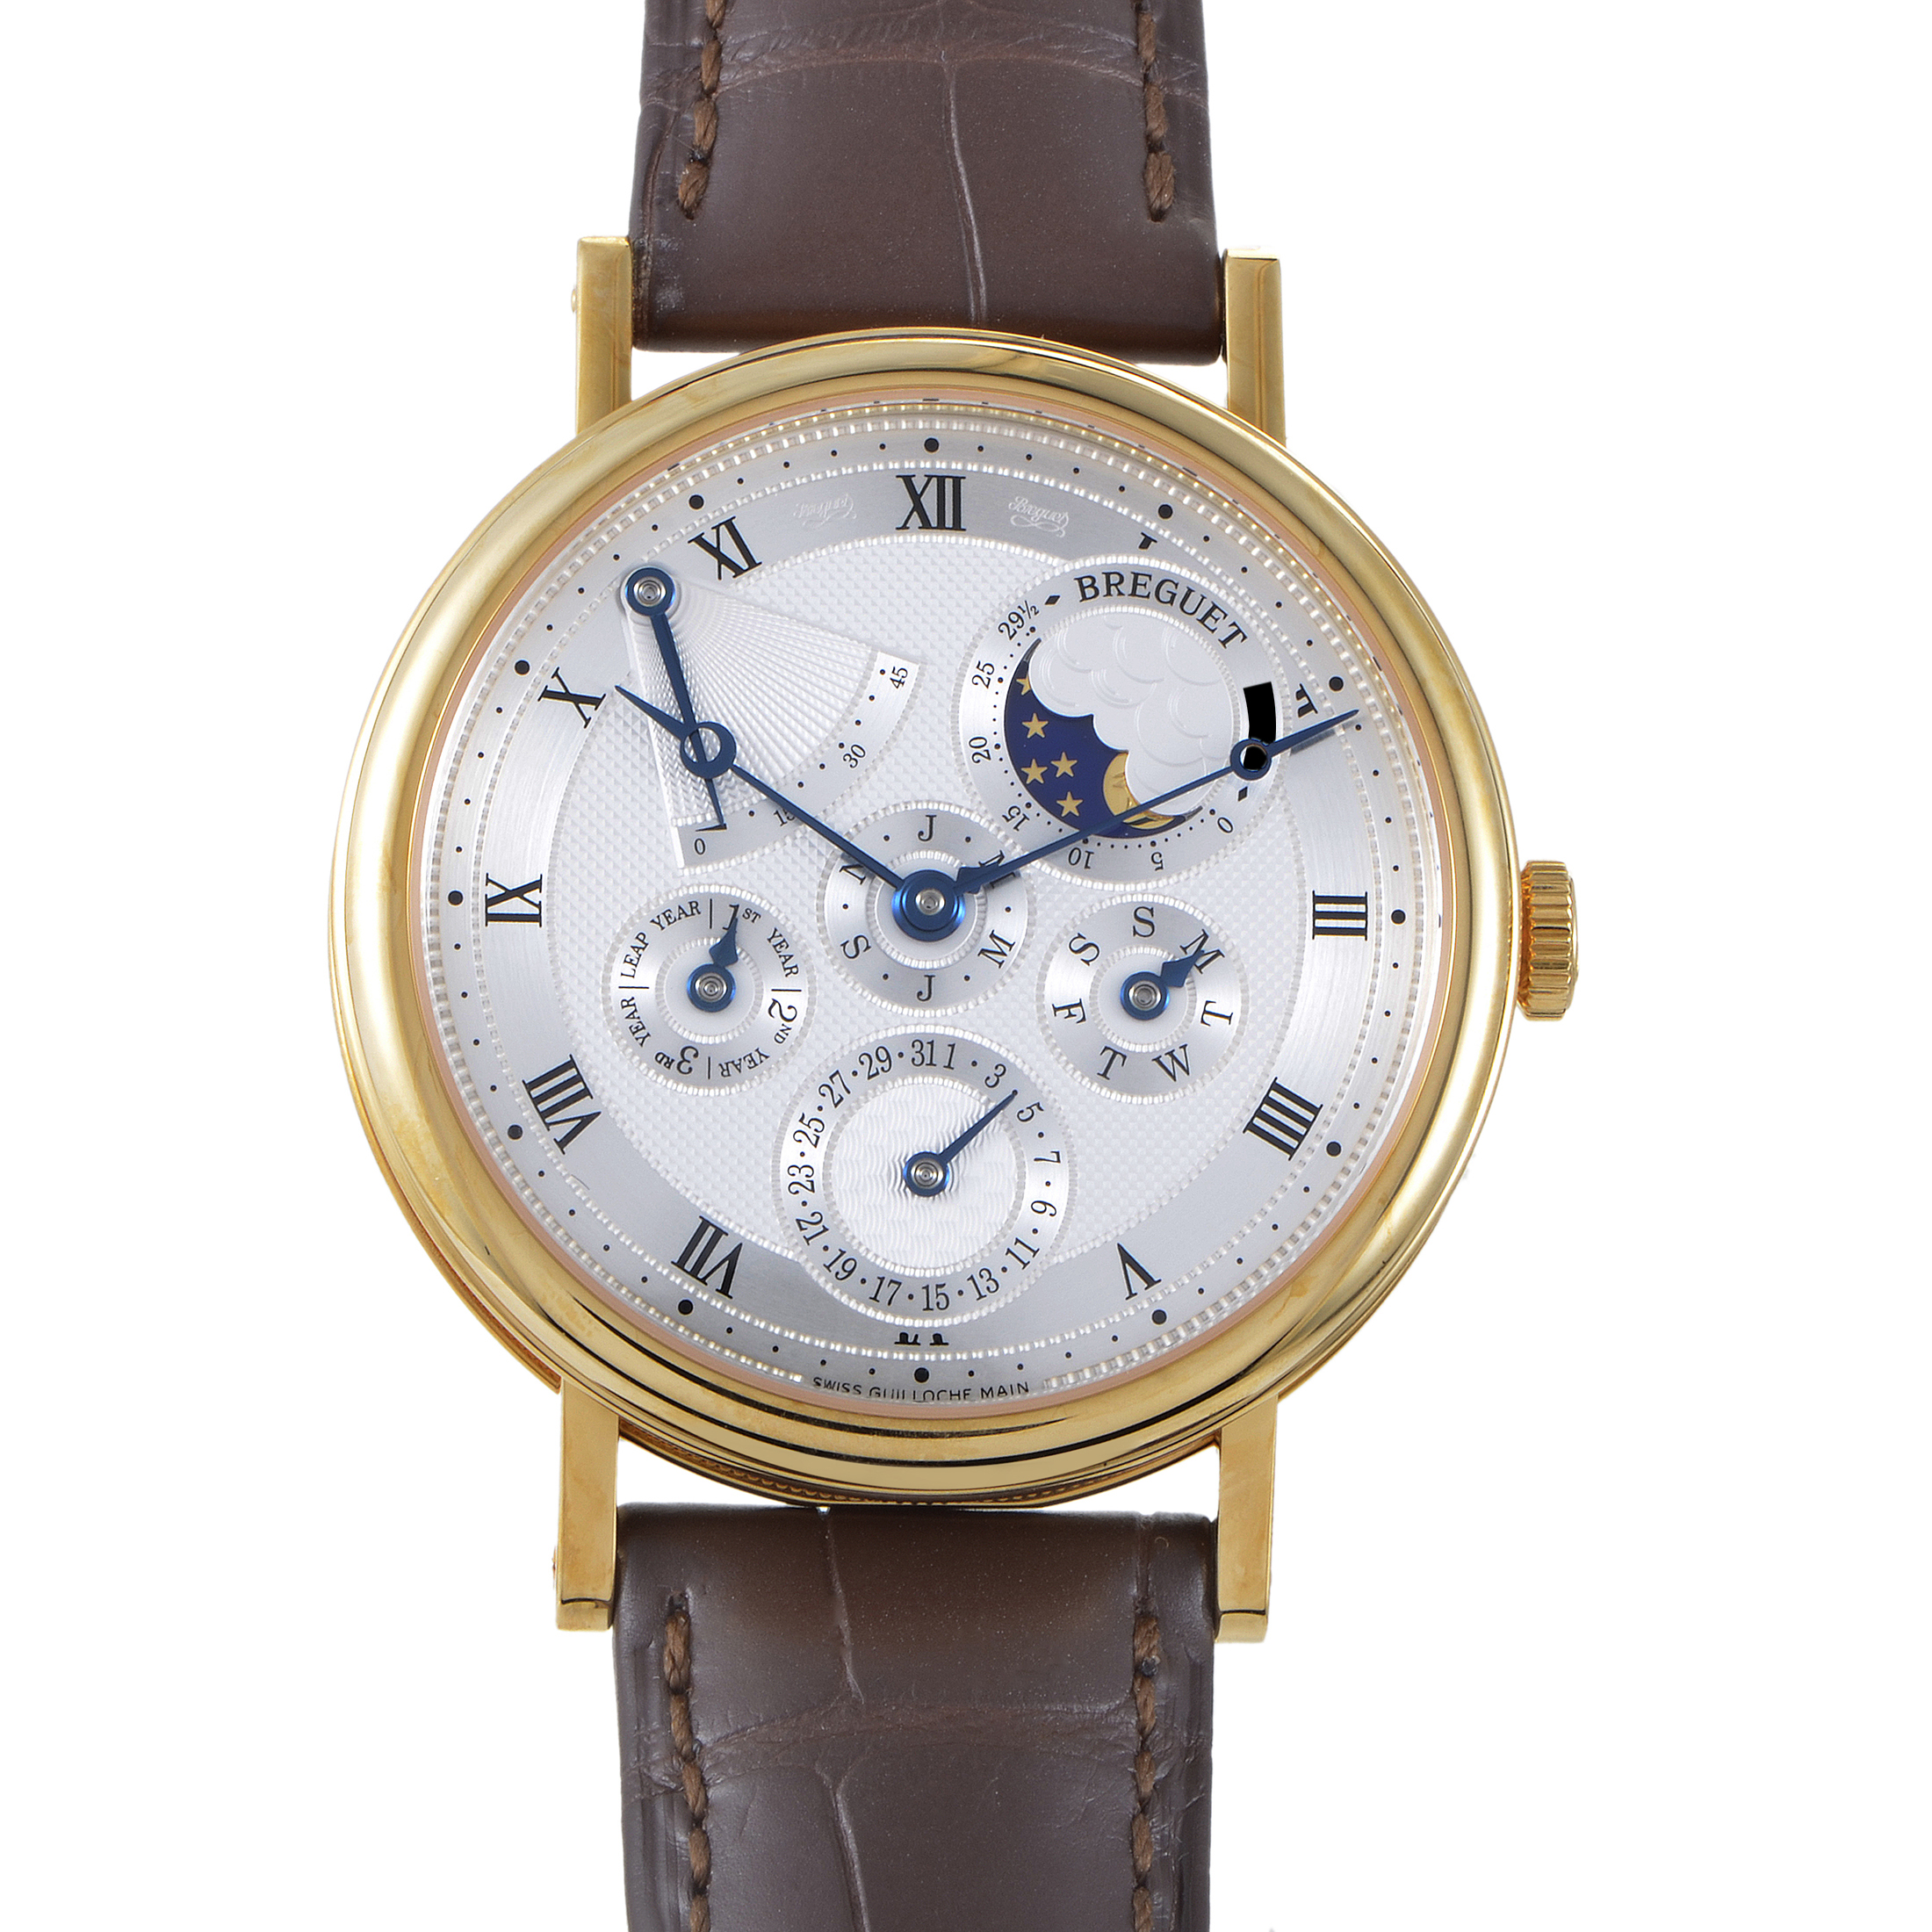 Grande Complication Perpetual Calendar Mens Watch 5327BA/1E/9V6